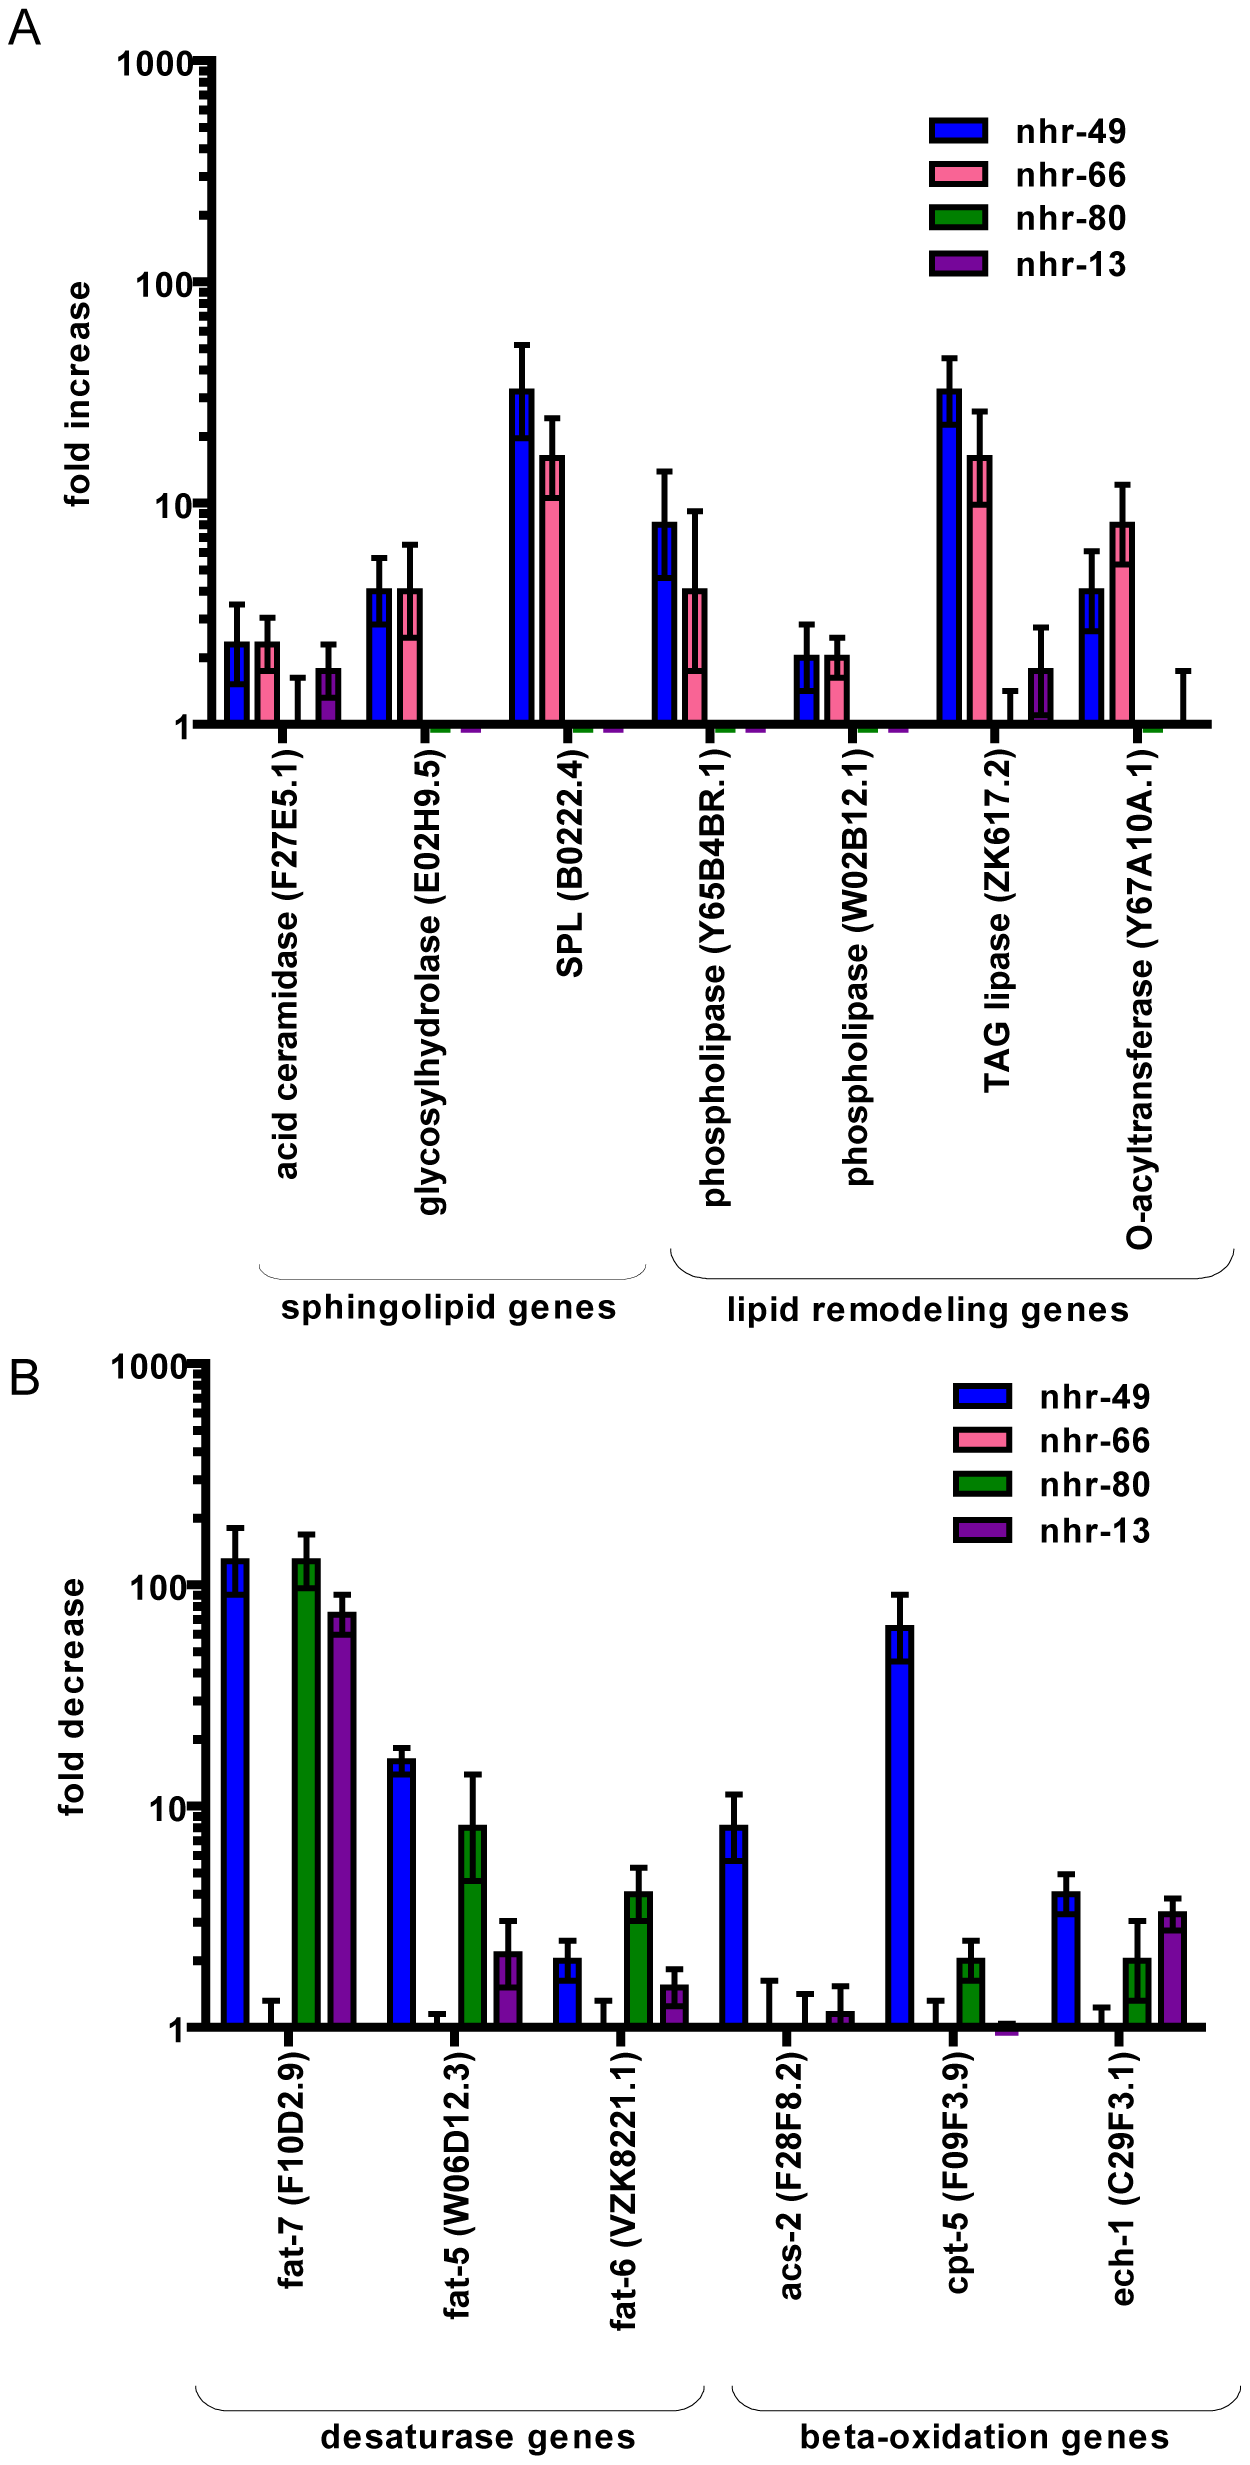 NHR-49 collaborates with NHR-66 to regulate sphingolipid and lipid remodeling genes and with NHR-80 and NHR-13 to regulate fatty acid desaturase genes.